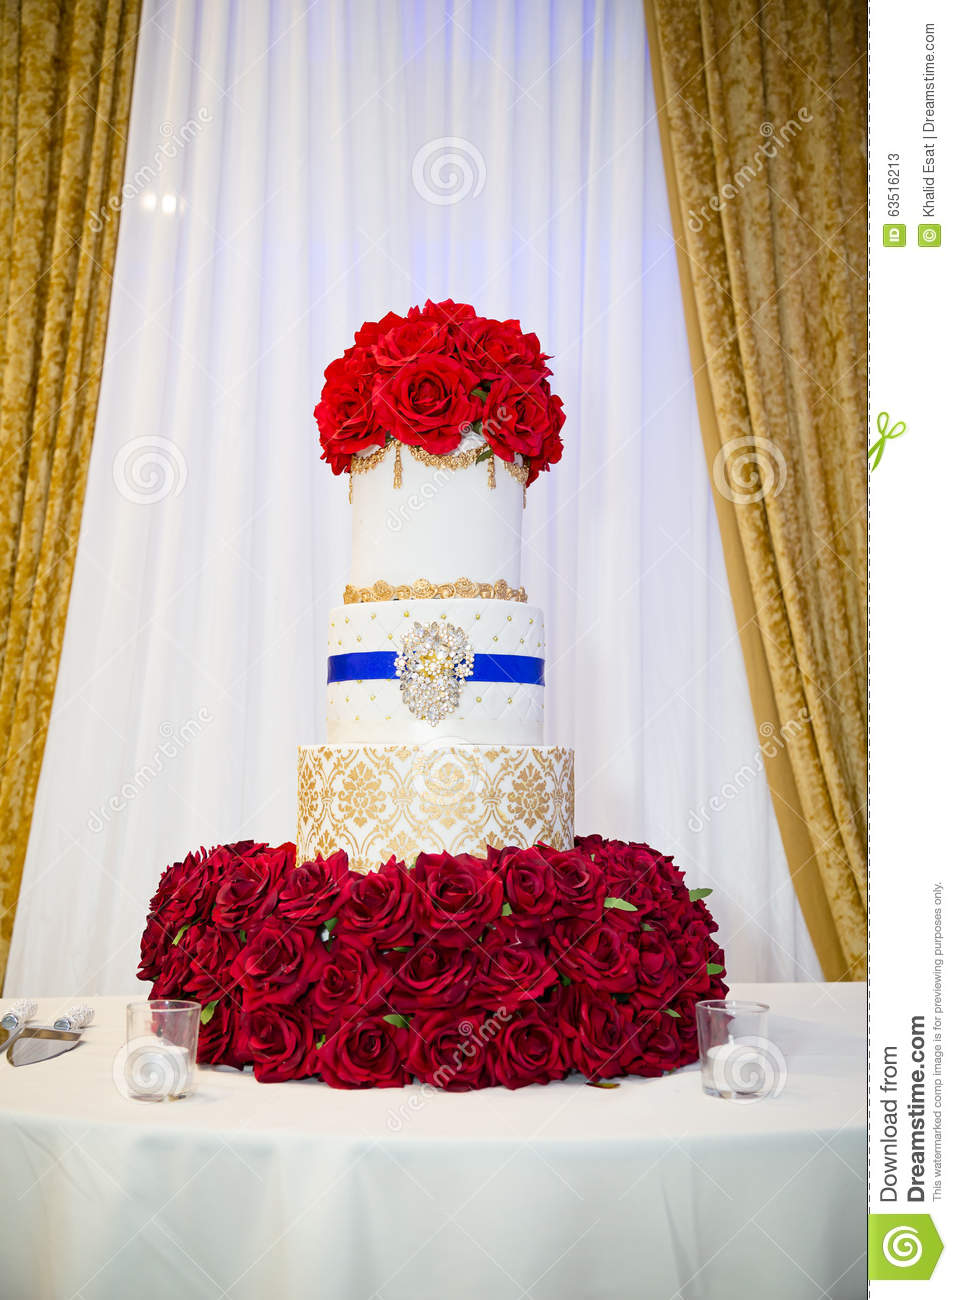 Wedding cake stock image. Image of rose, cake, food, marriage - 63516213